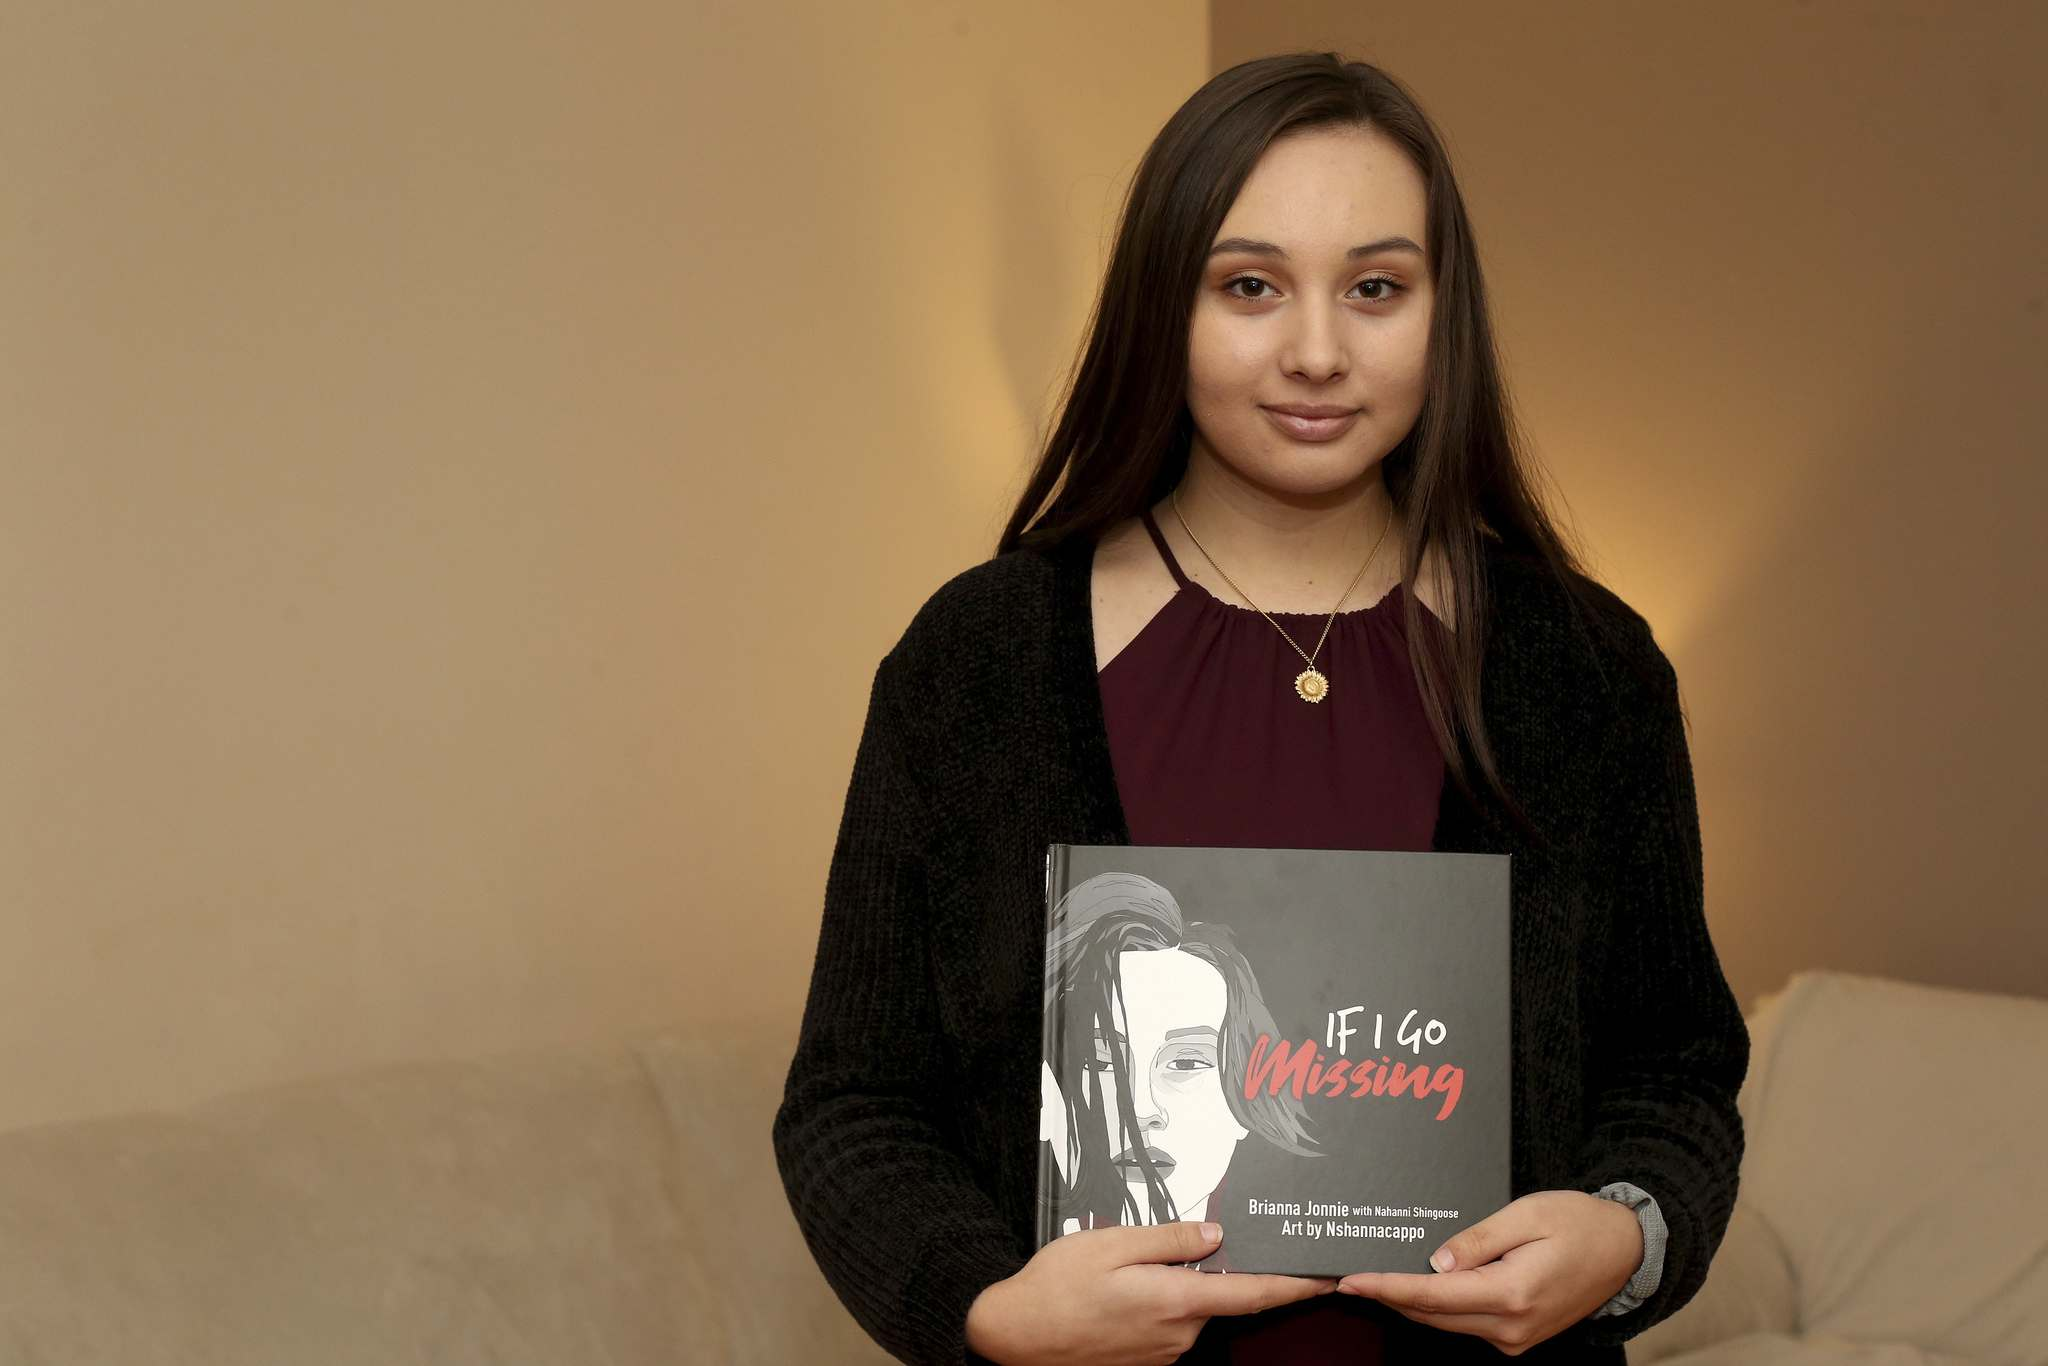 """I would never have dreamed any of this would have happened — let alone the book — when I wrote my letter,"" Brianna Jonnie said. (Shannon VanRaes / Winnipeg Free Press)"